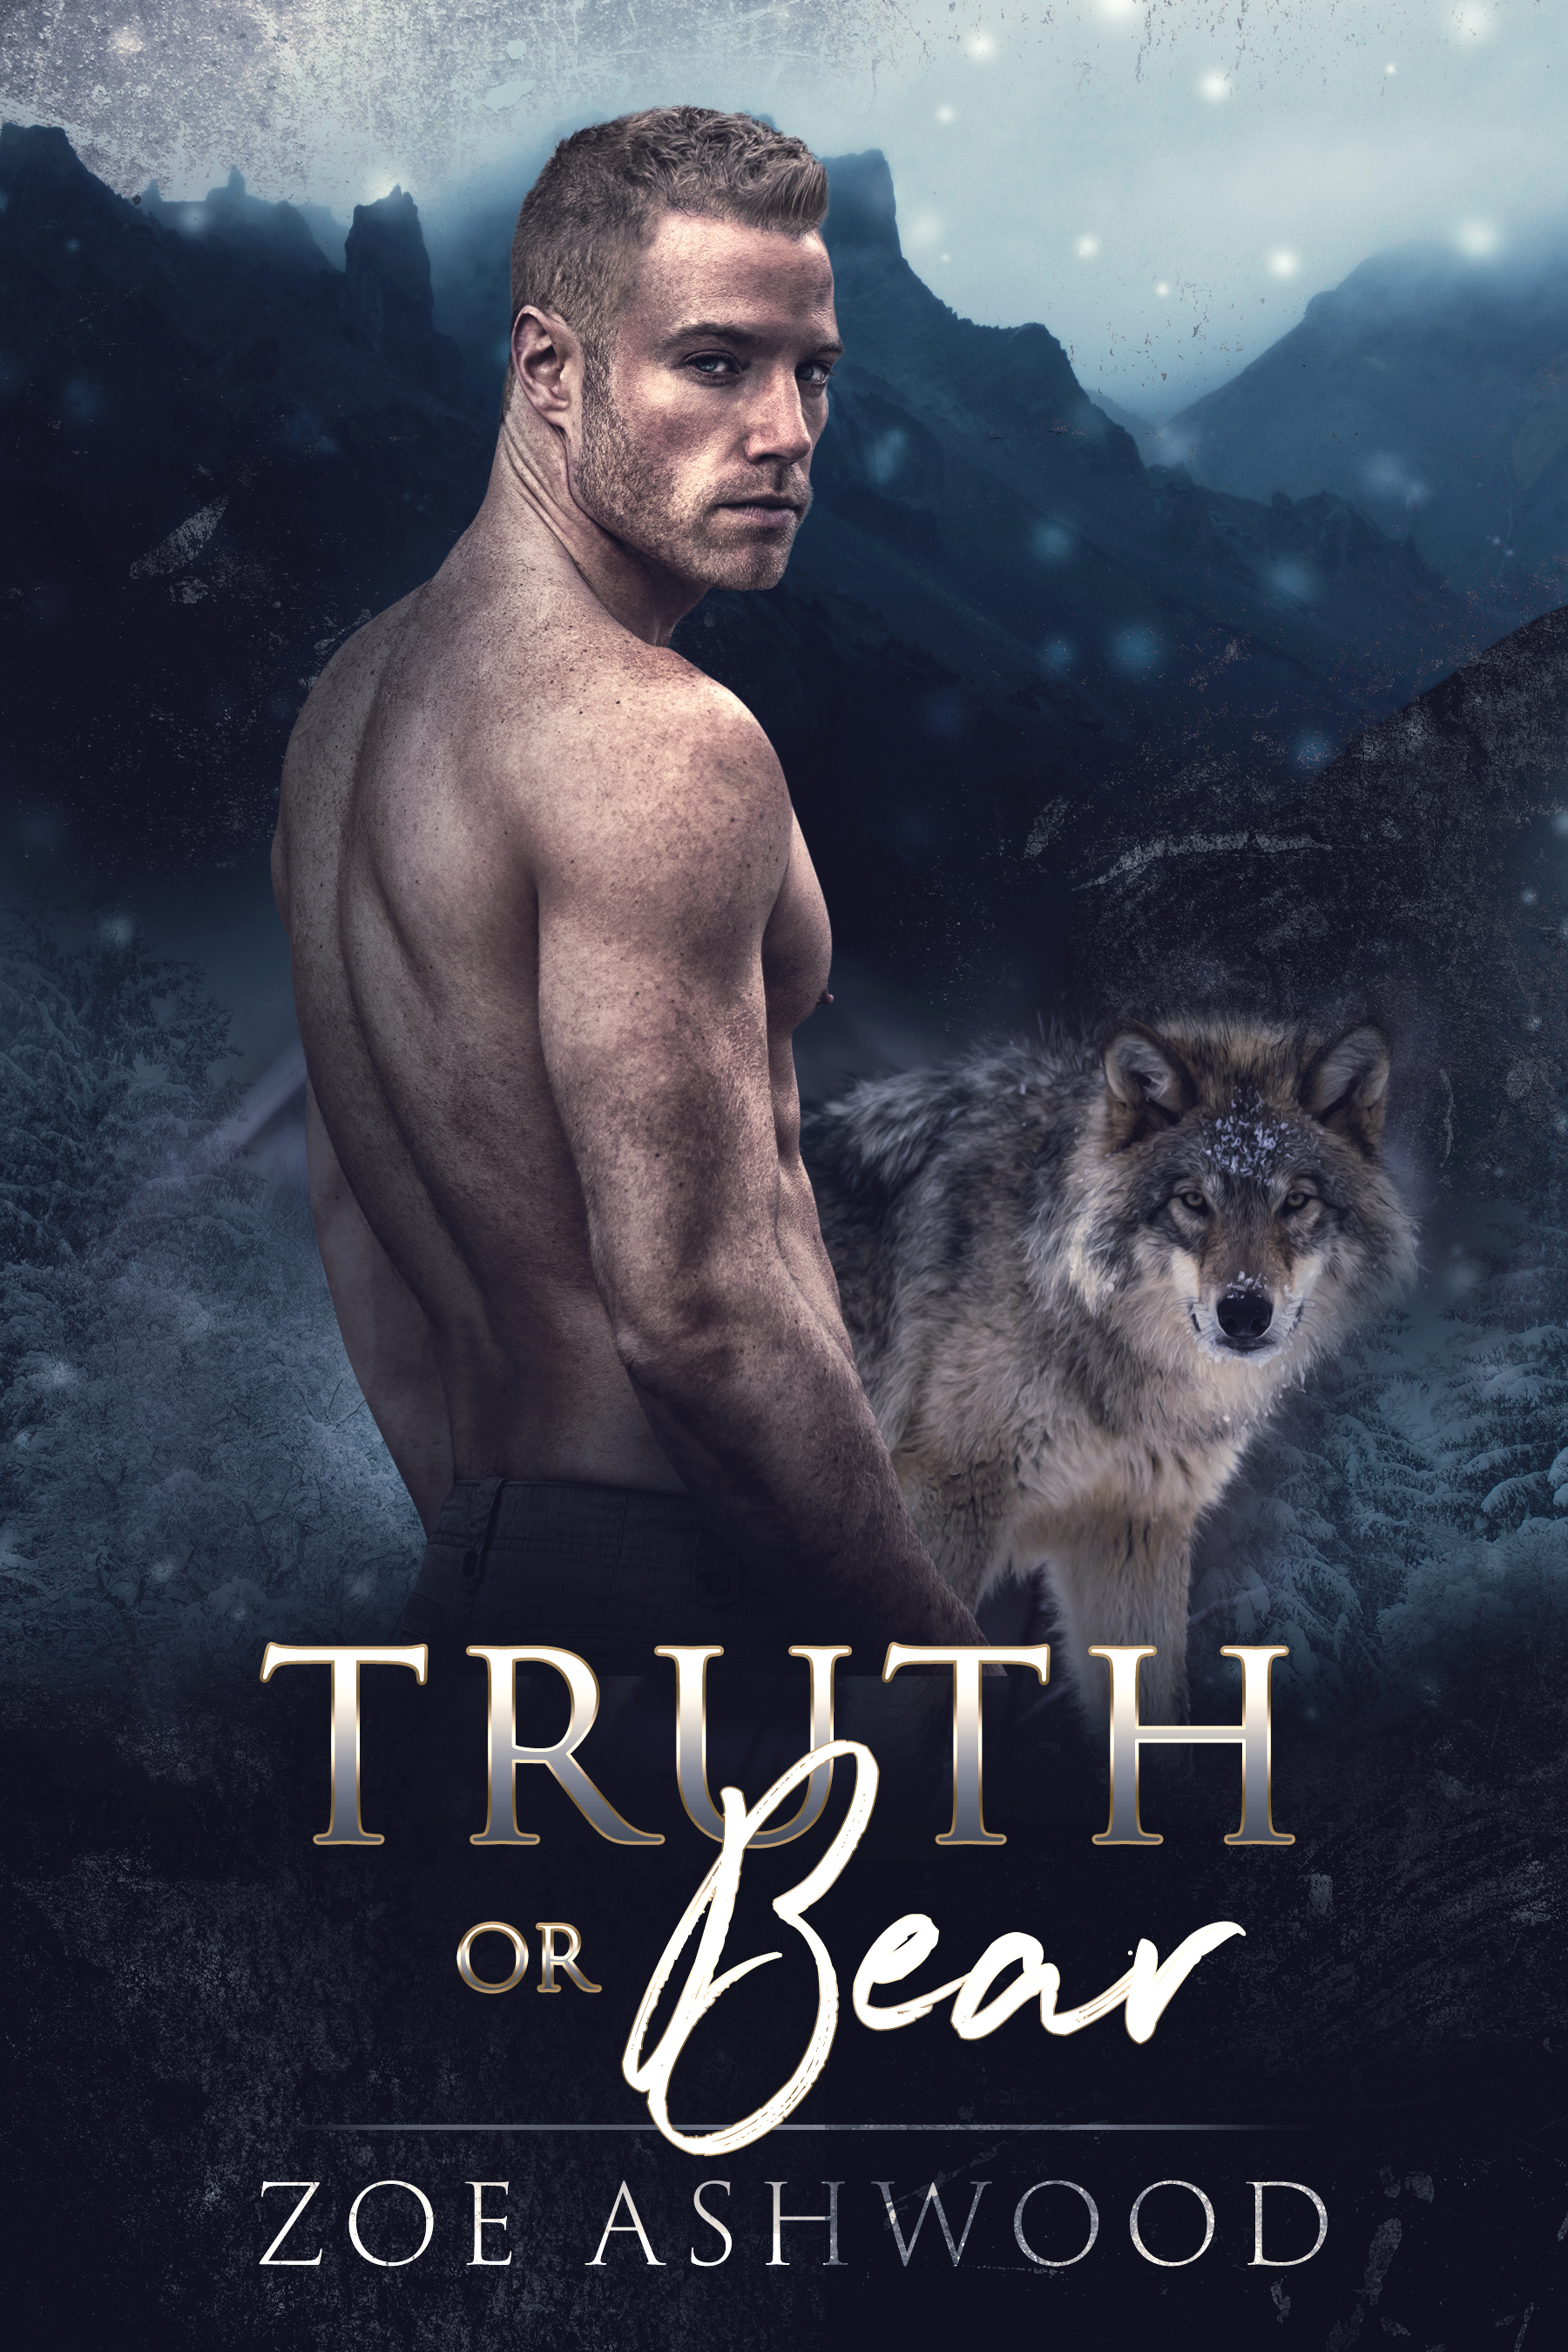 Truth or Bear by Zoe Ashwood - a enemies-to-lovers, second chance shapeshifter paranormal romance.